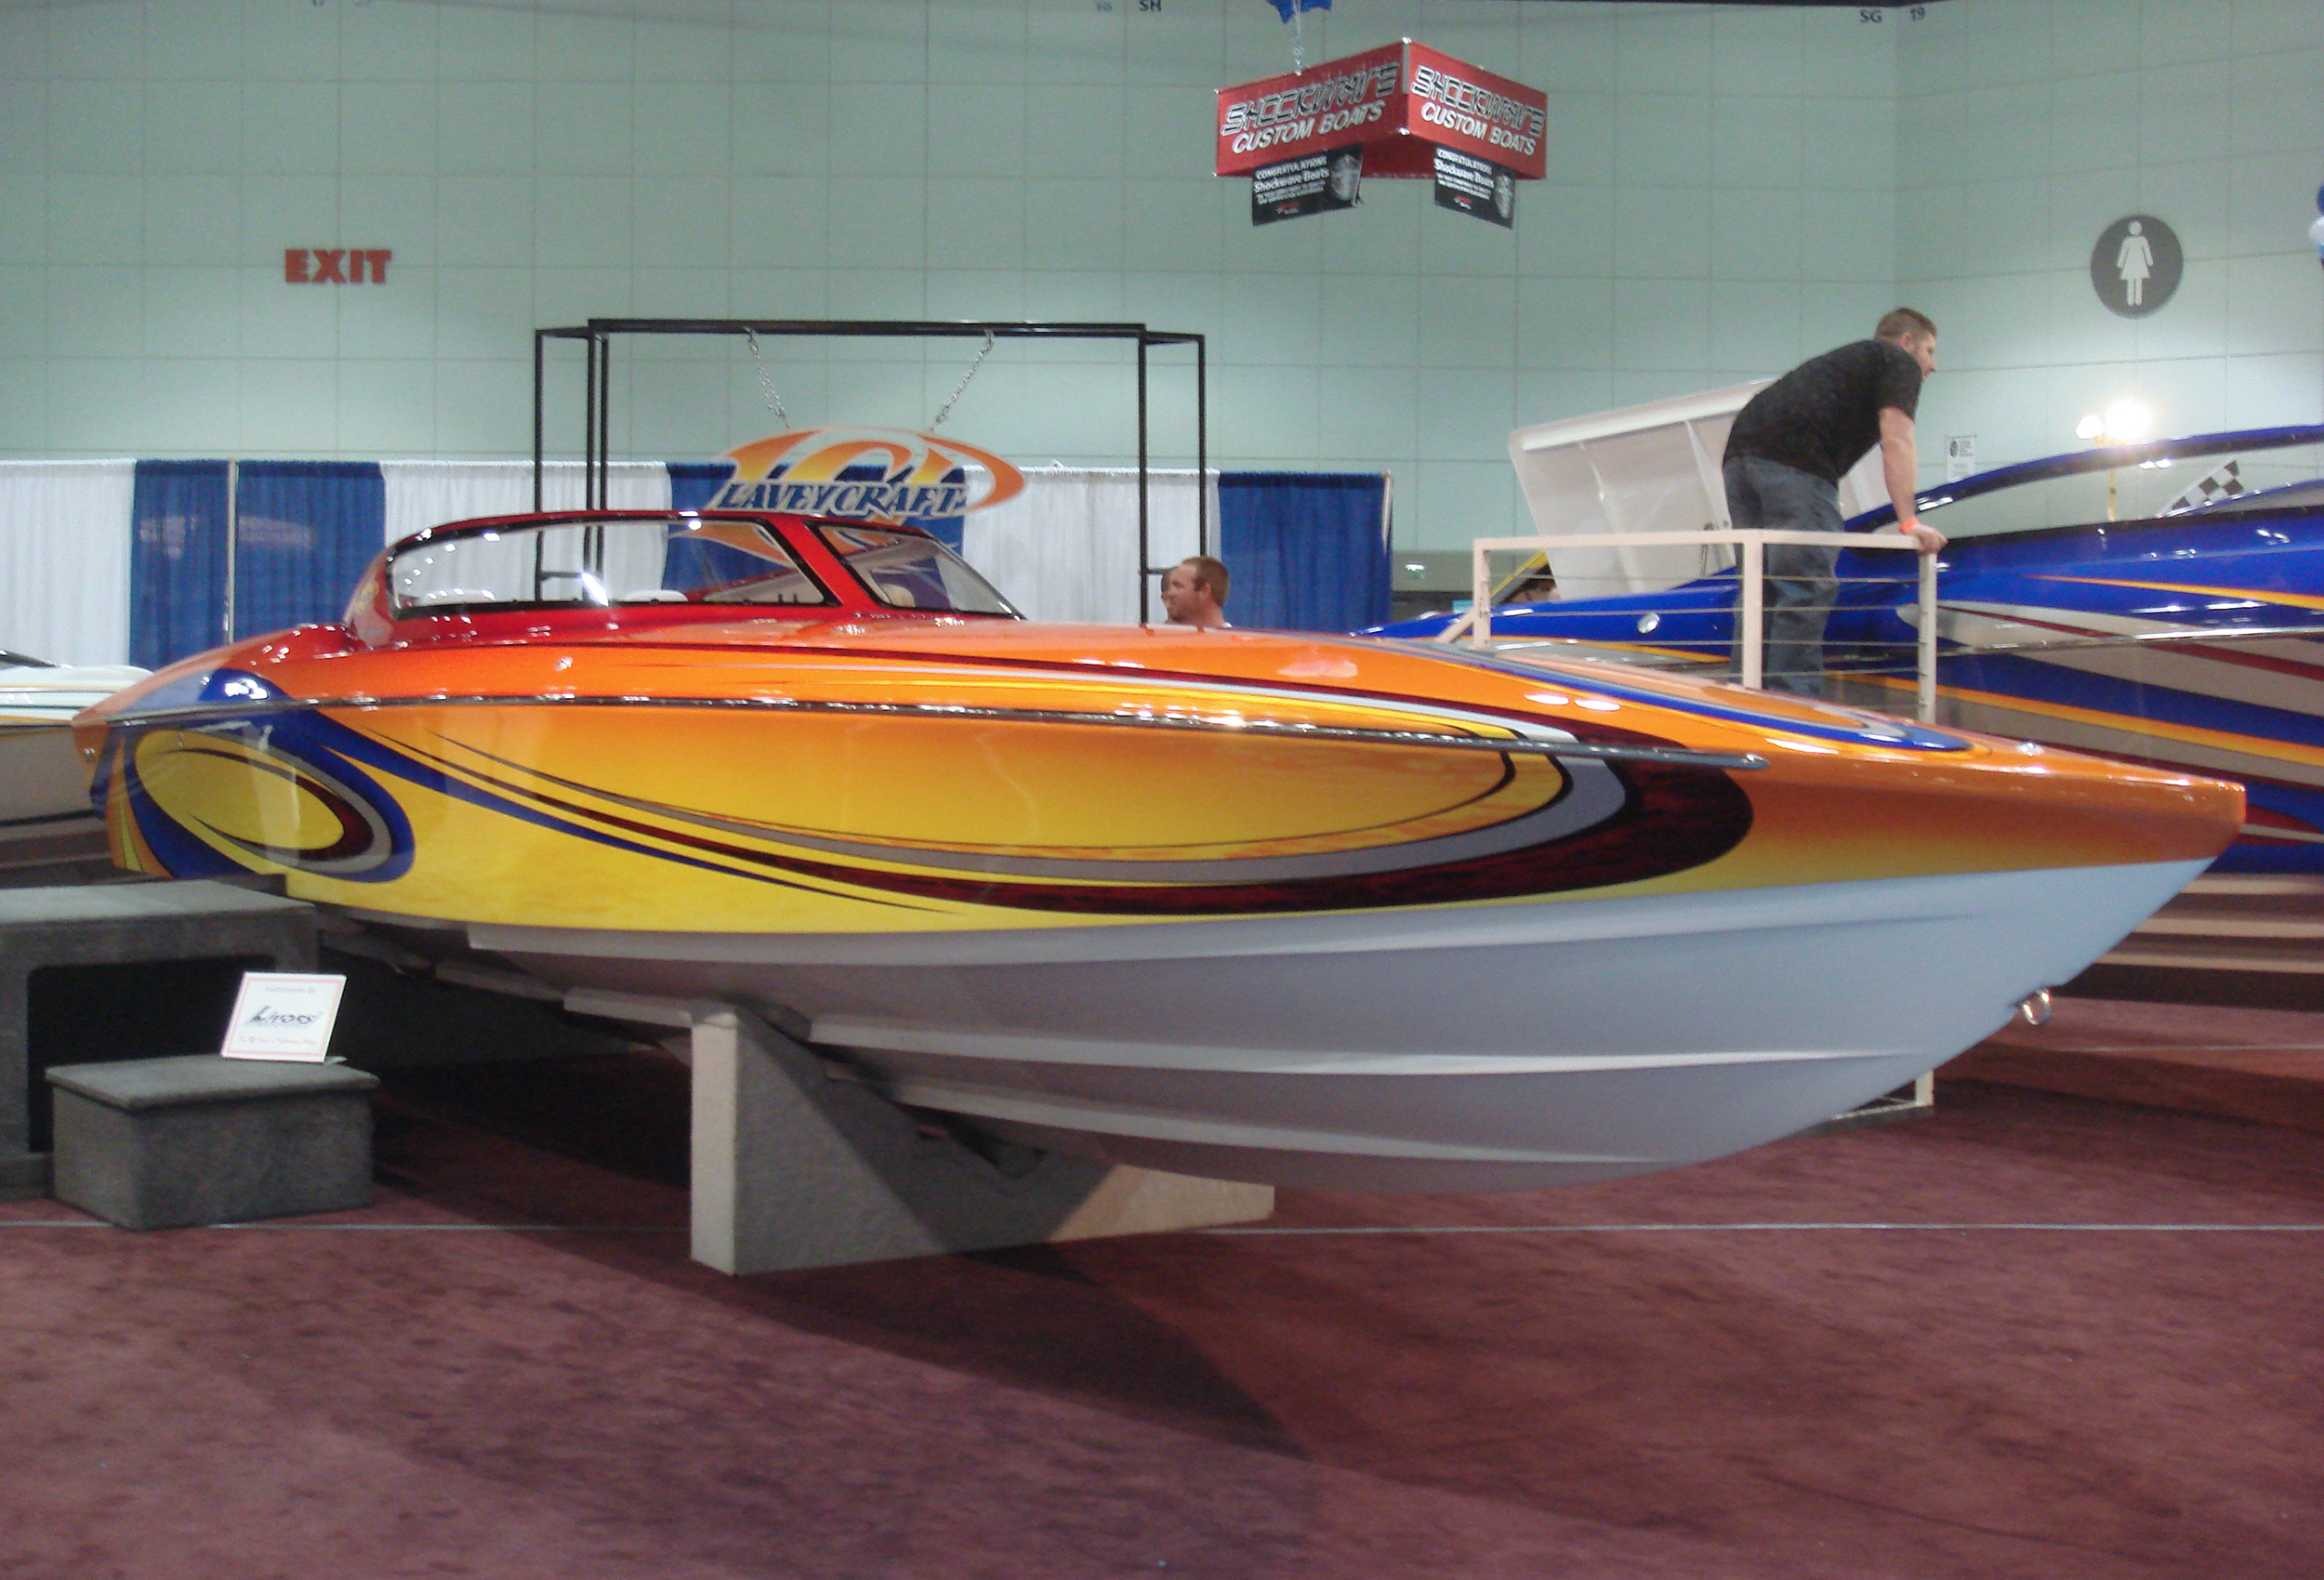 28 Evo Lavey Craft - carbon fiber at boat show.jpg